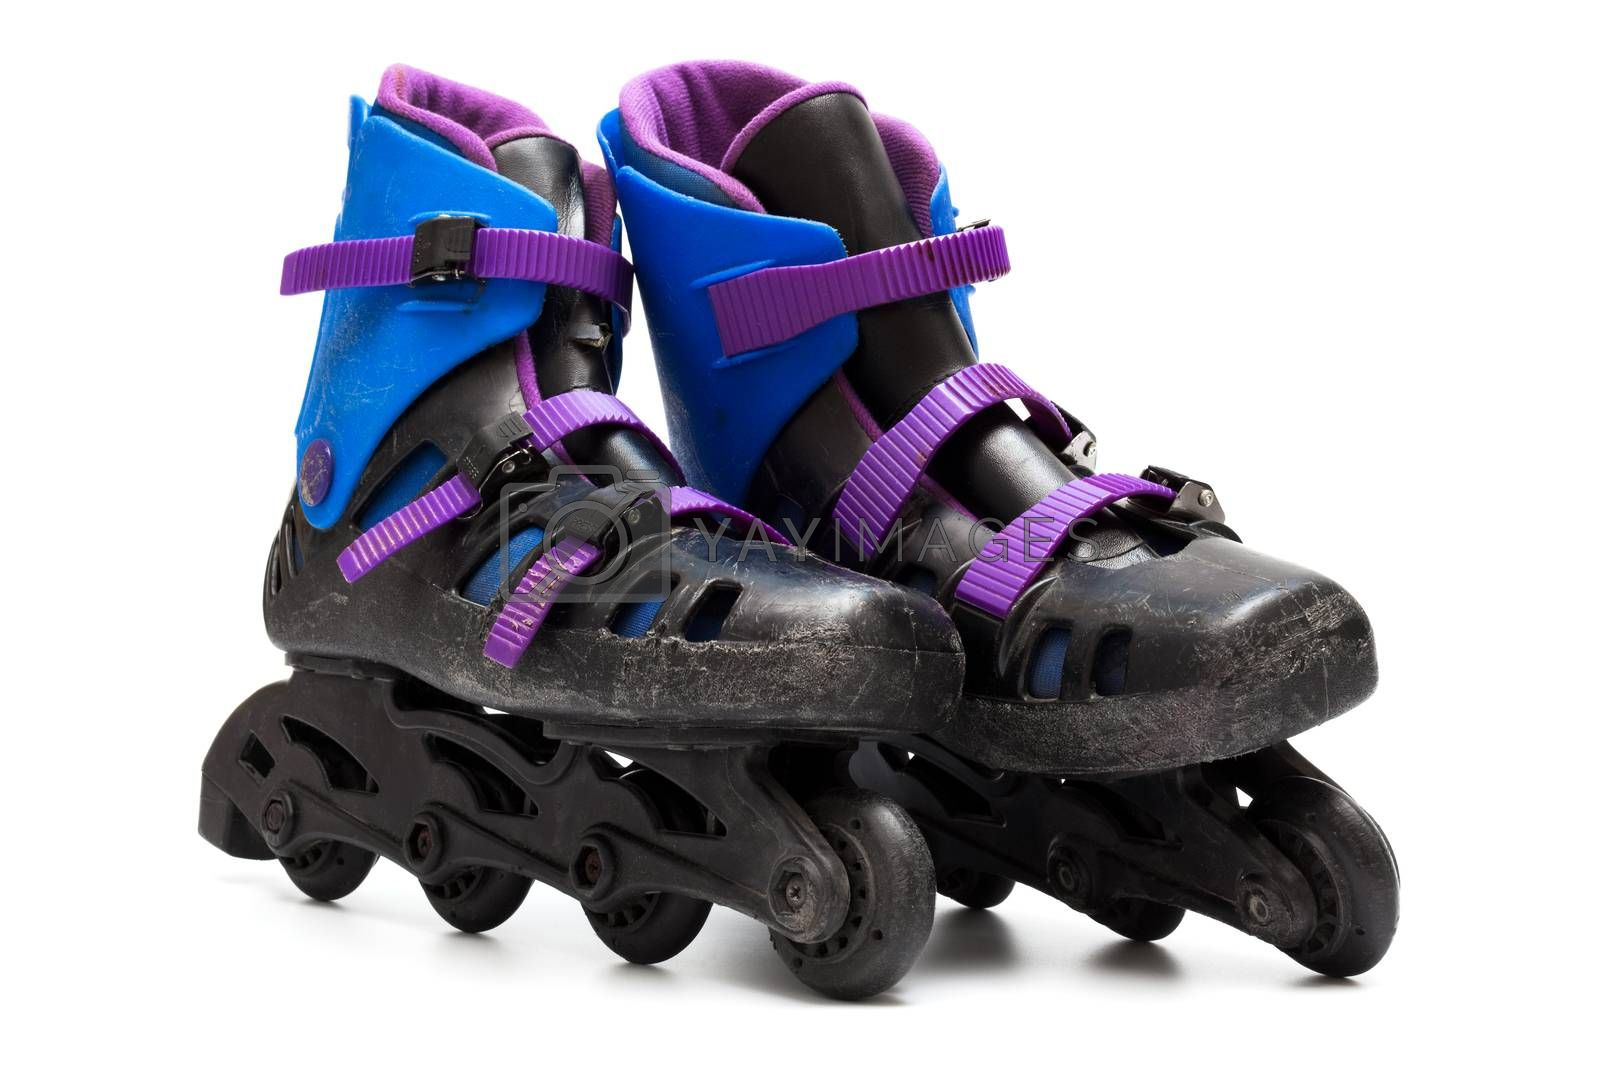 Royalty free image of old roller skates by terex